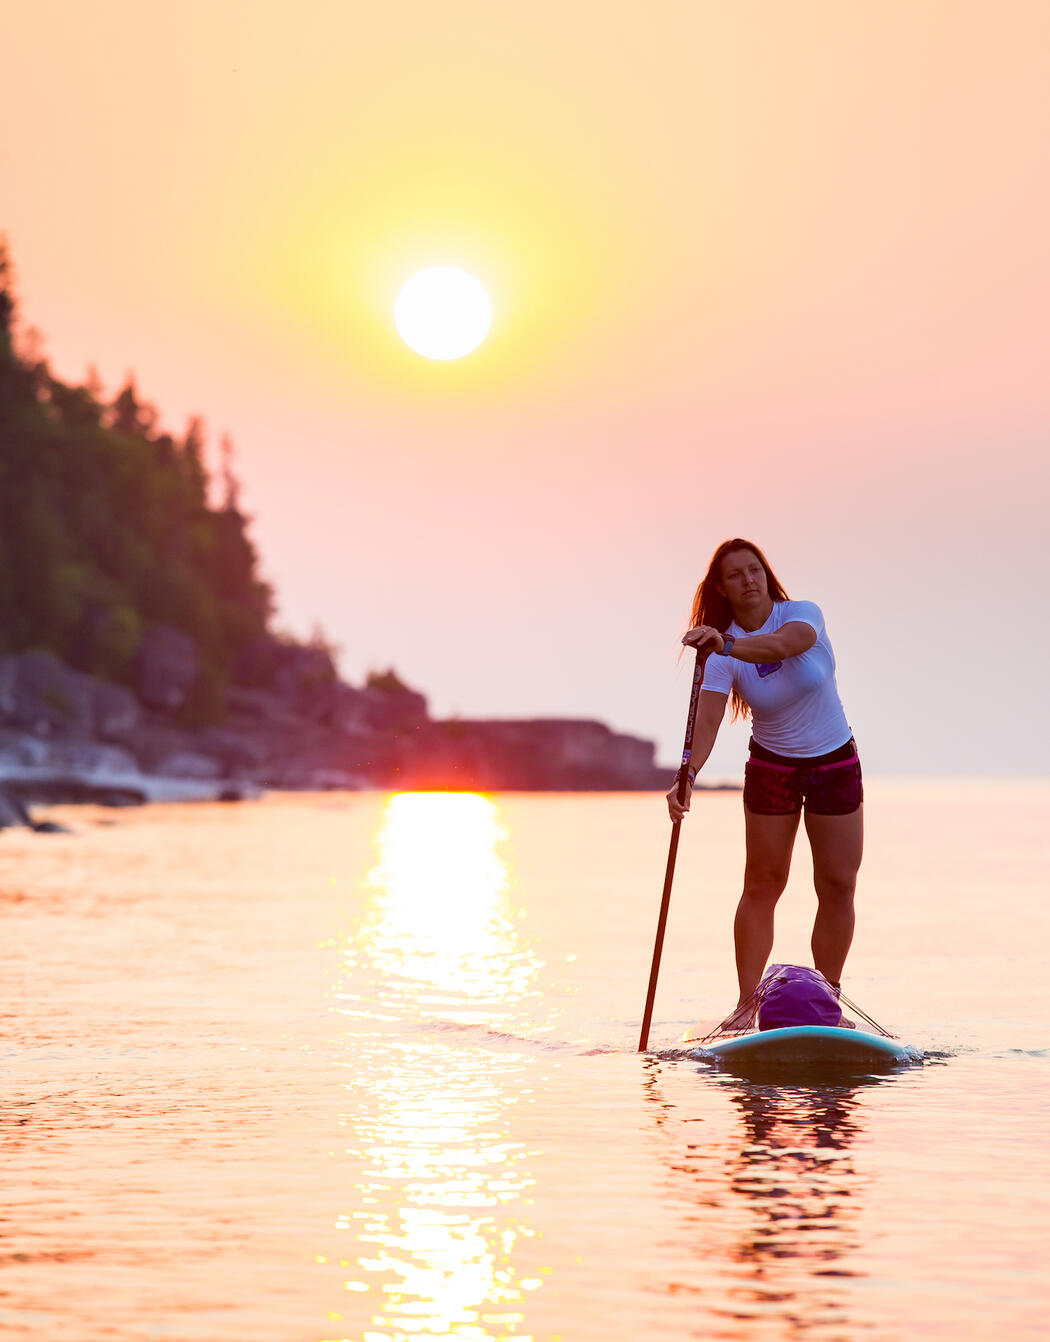 Strong woman stand-up paddle boarding in front of warm sunset